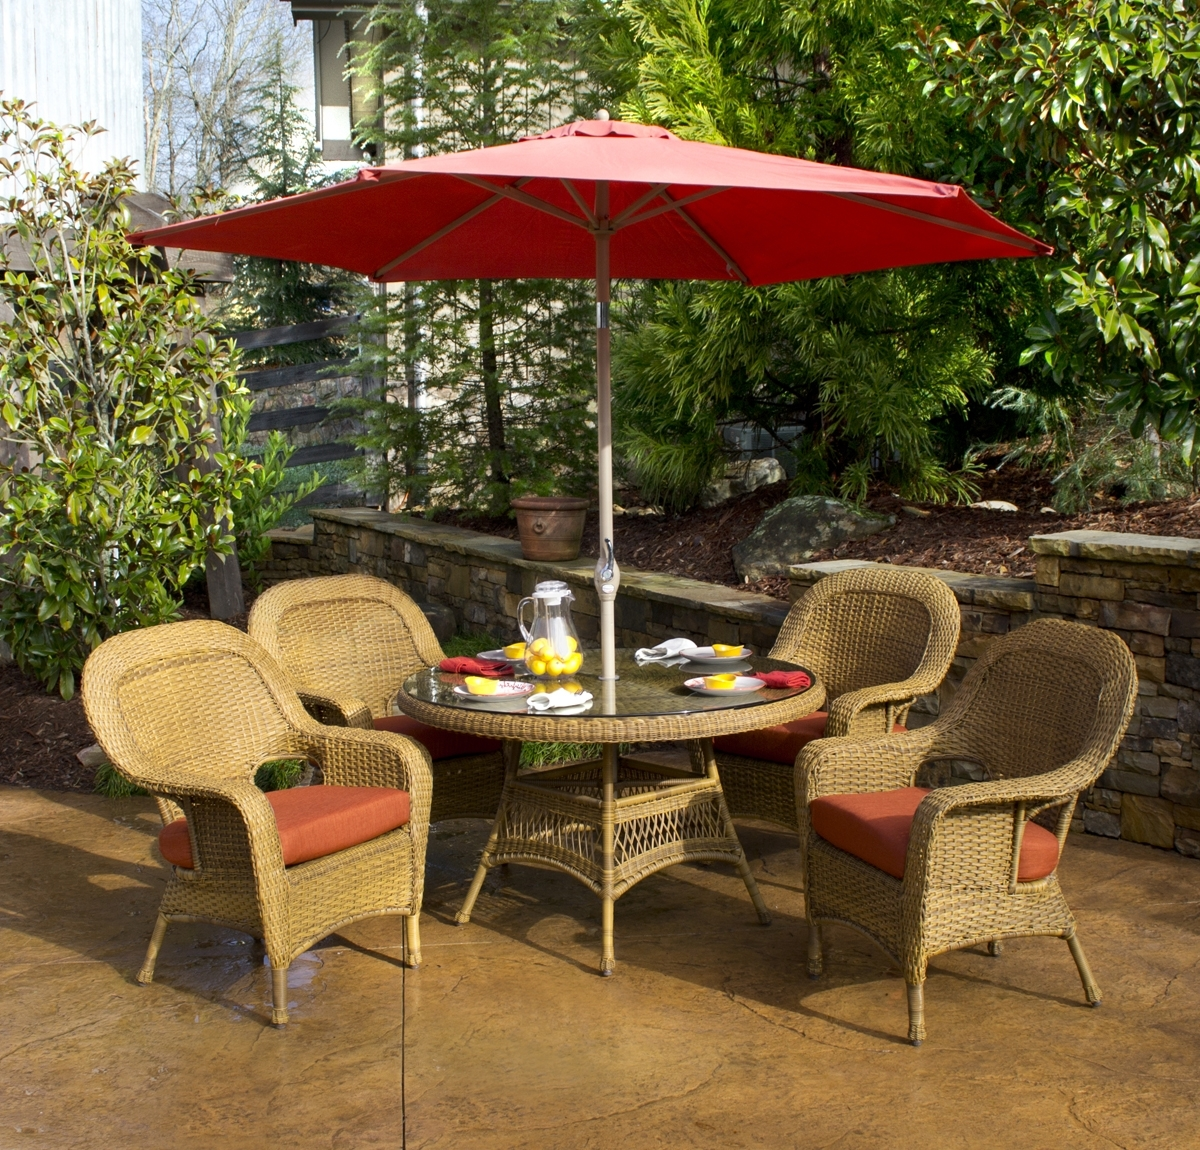 Cute Umbrella For Patio Table : Life On The Move – Umbrella For With Favorite Extended Patio Umbrellas (View 16 of 20)